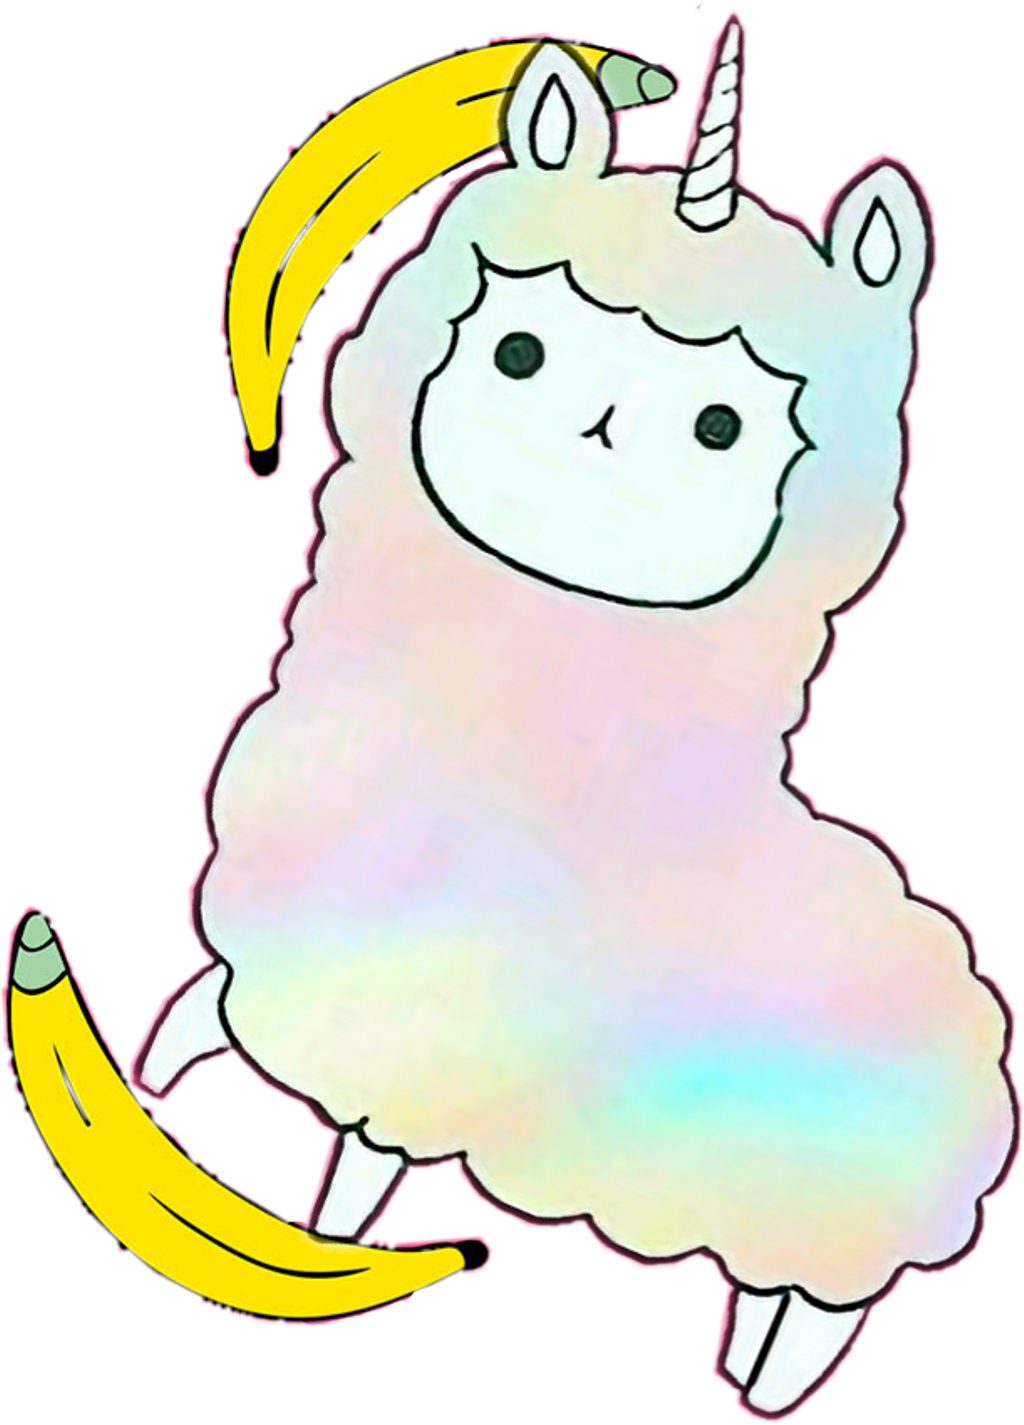 Llama clipart adorable. Llamacorn cute fluffy rainbow